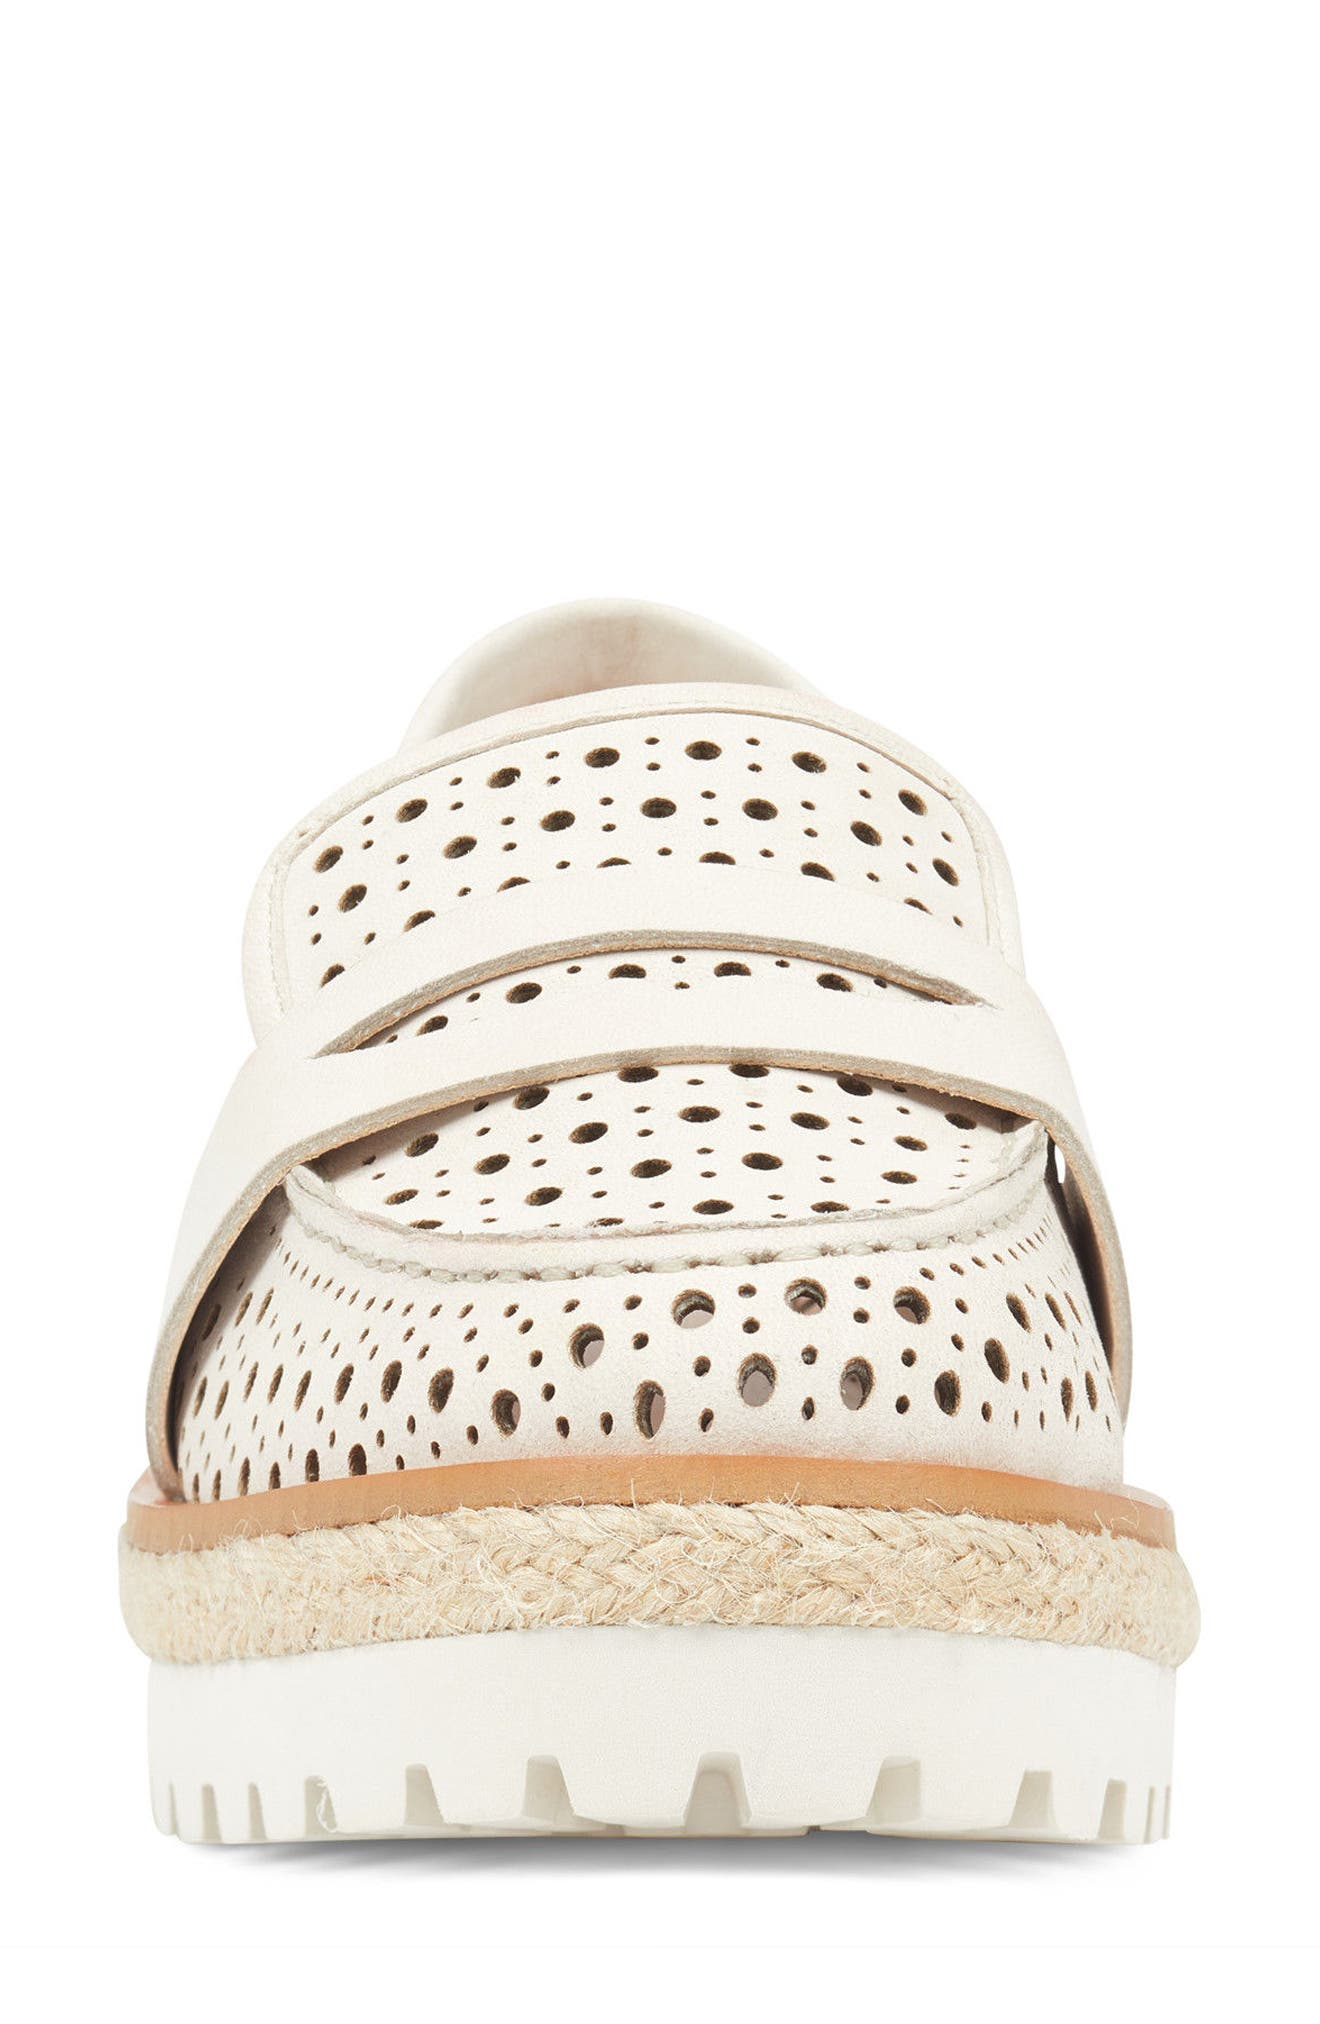 Gradskool Perforated Penny Loafer,                             Alternate thumbnail 4, color,                             Off White Leather